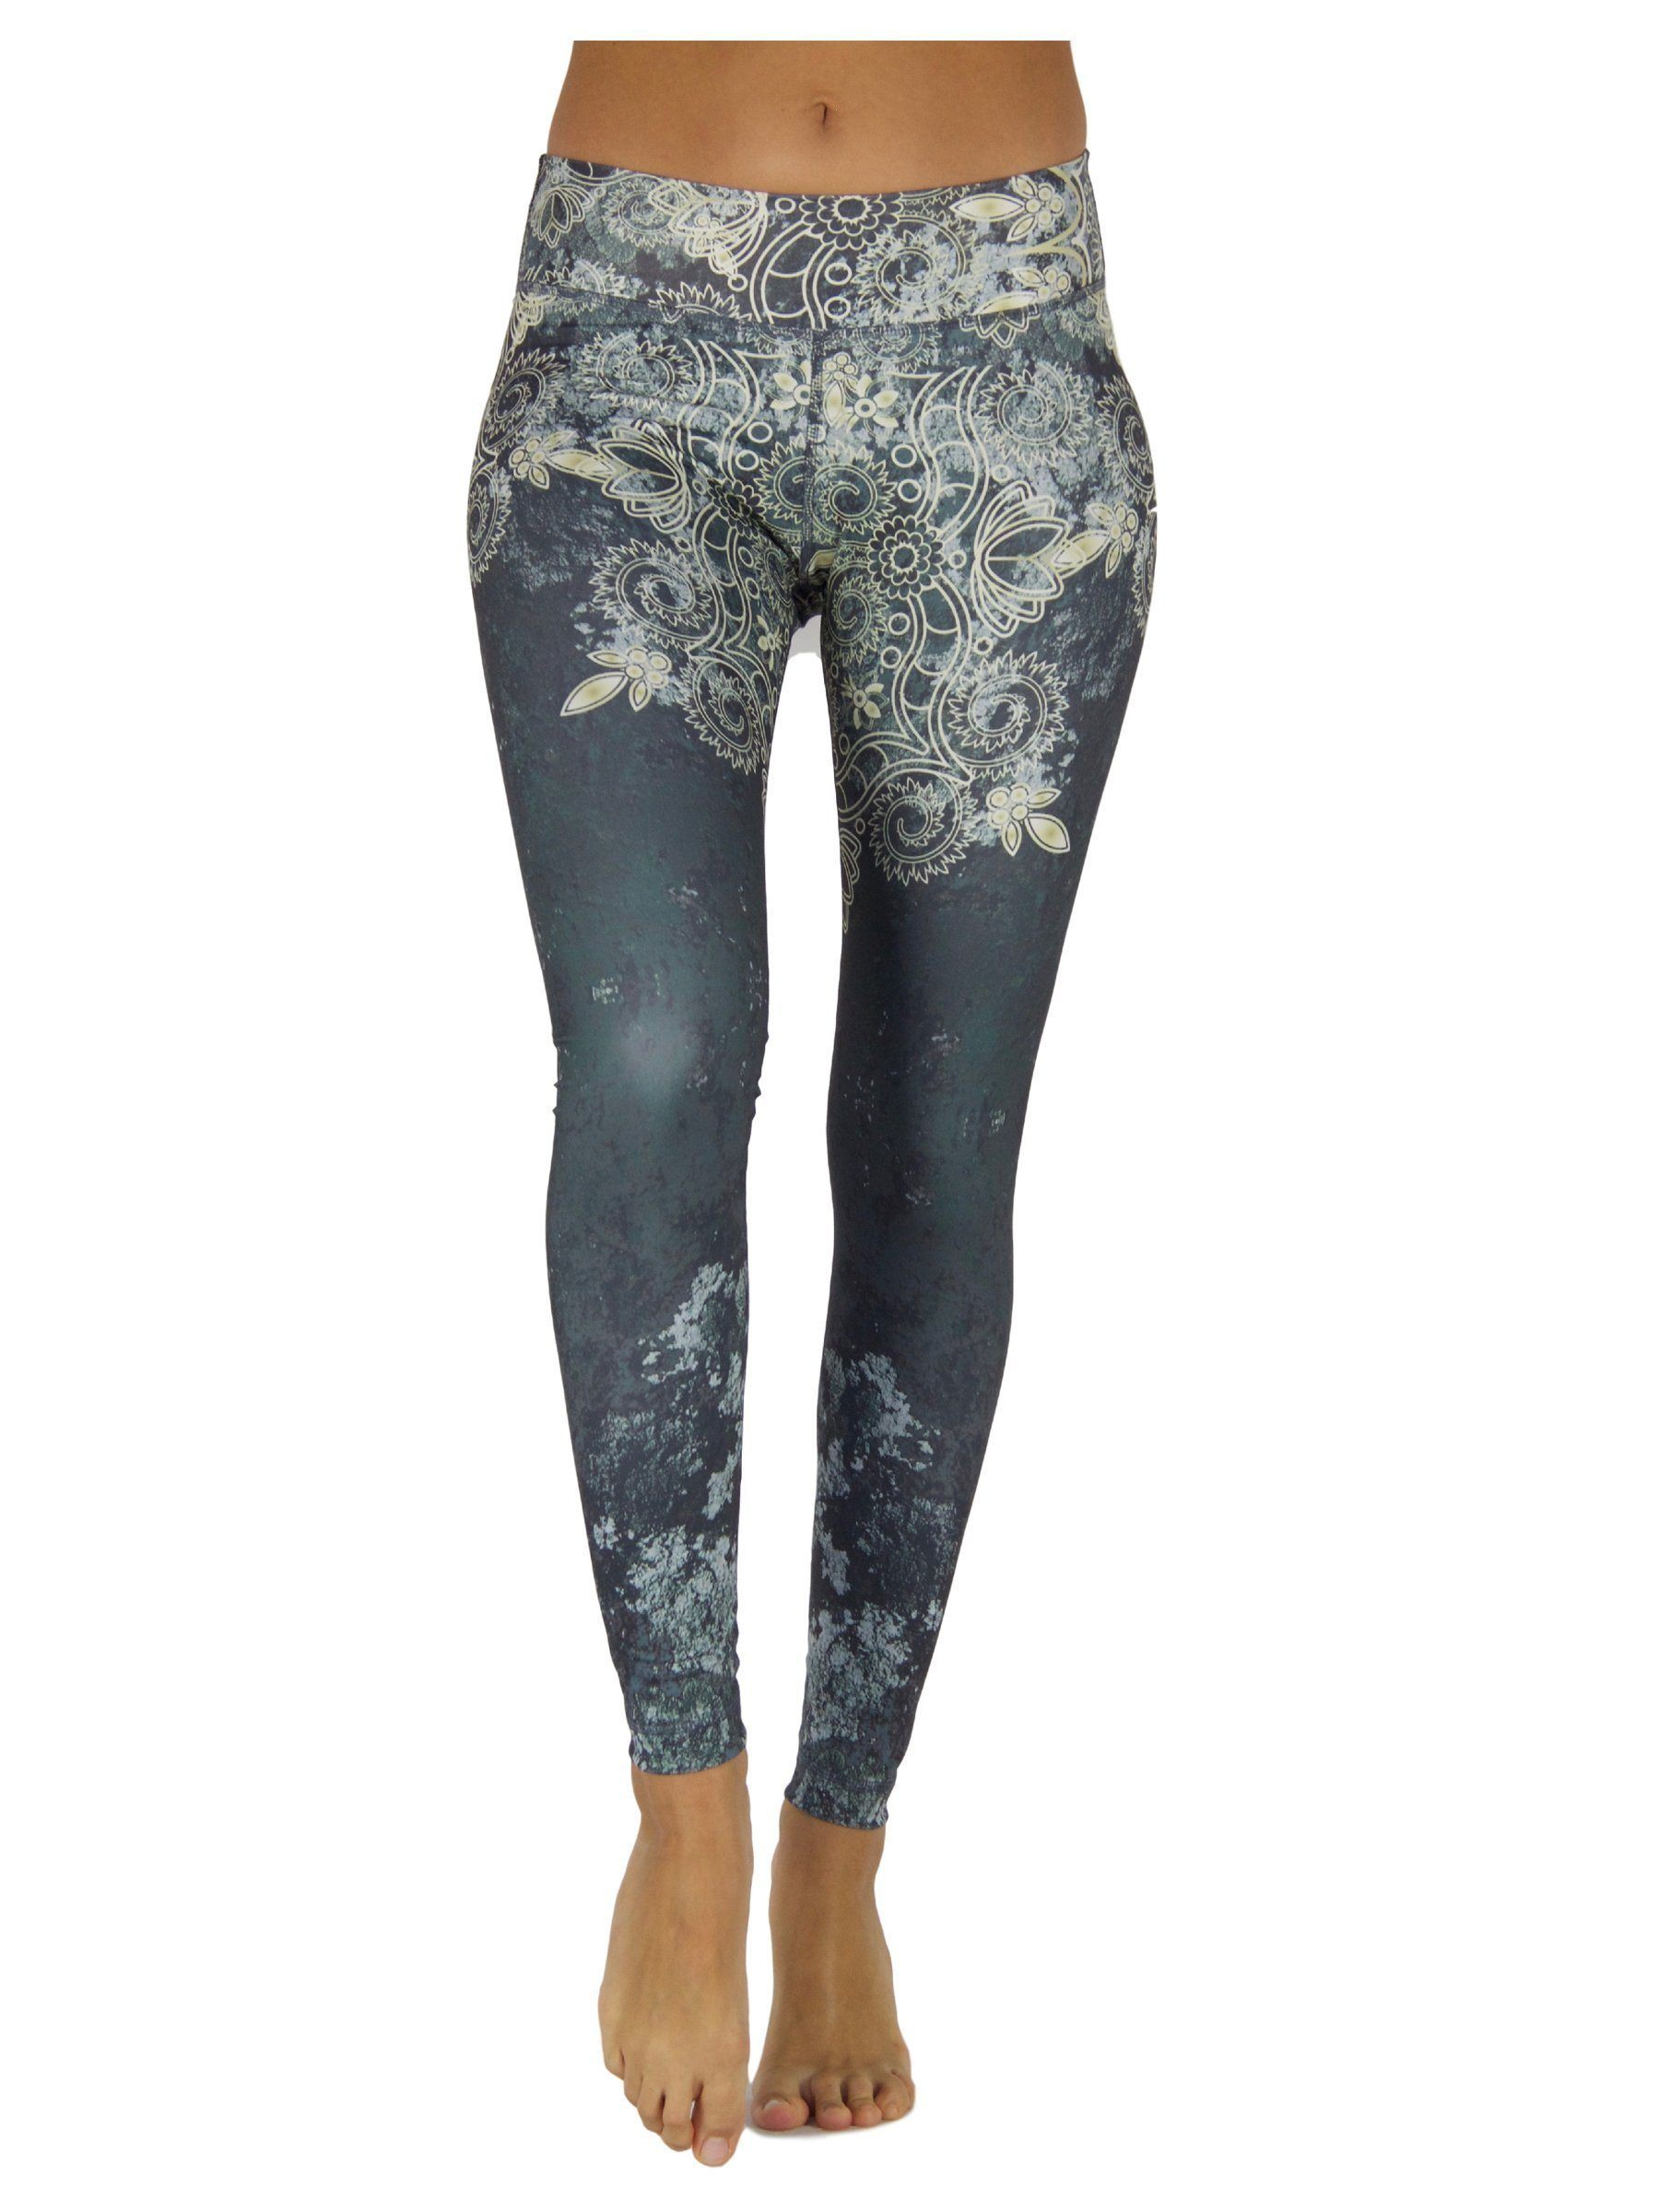 Ace of Lace by Niyama - High Quality, , Yoga Legging for Movement Artists.